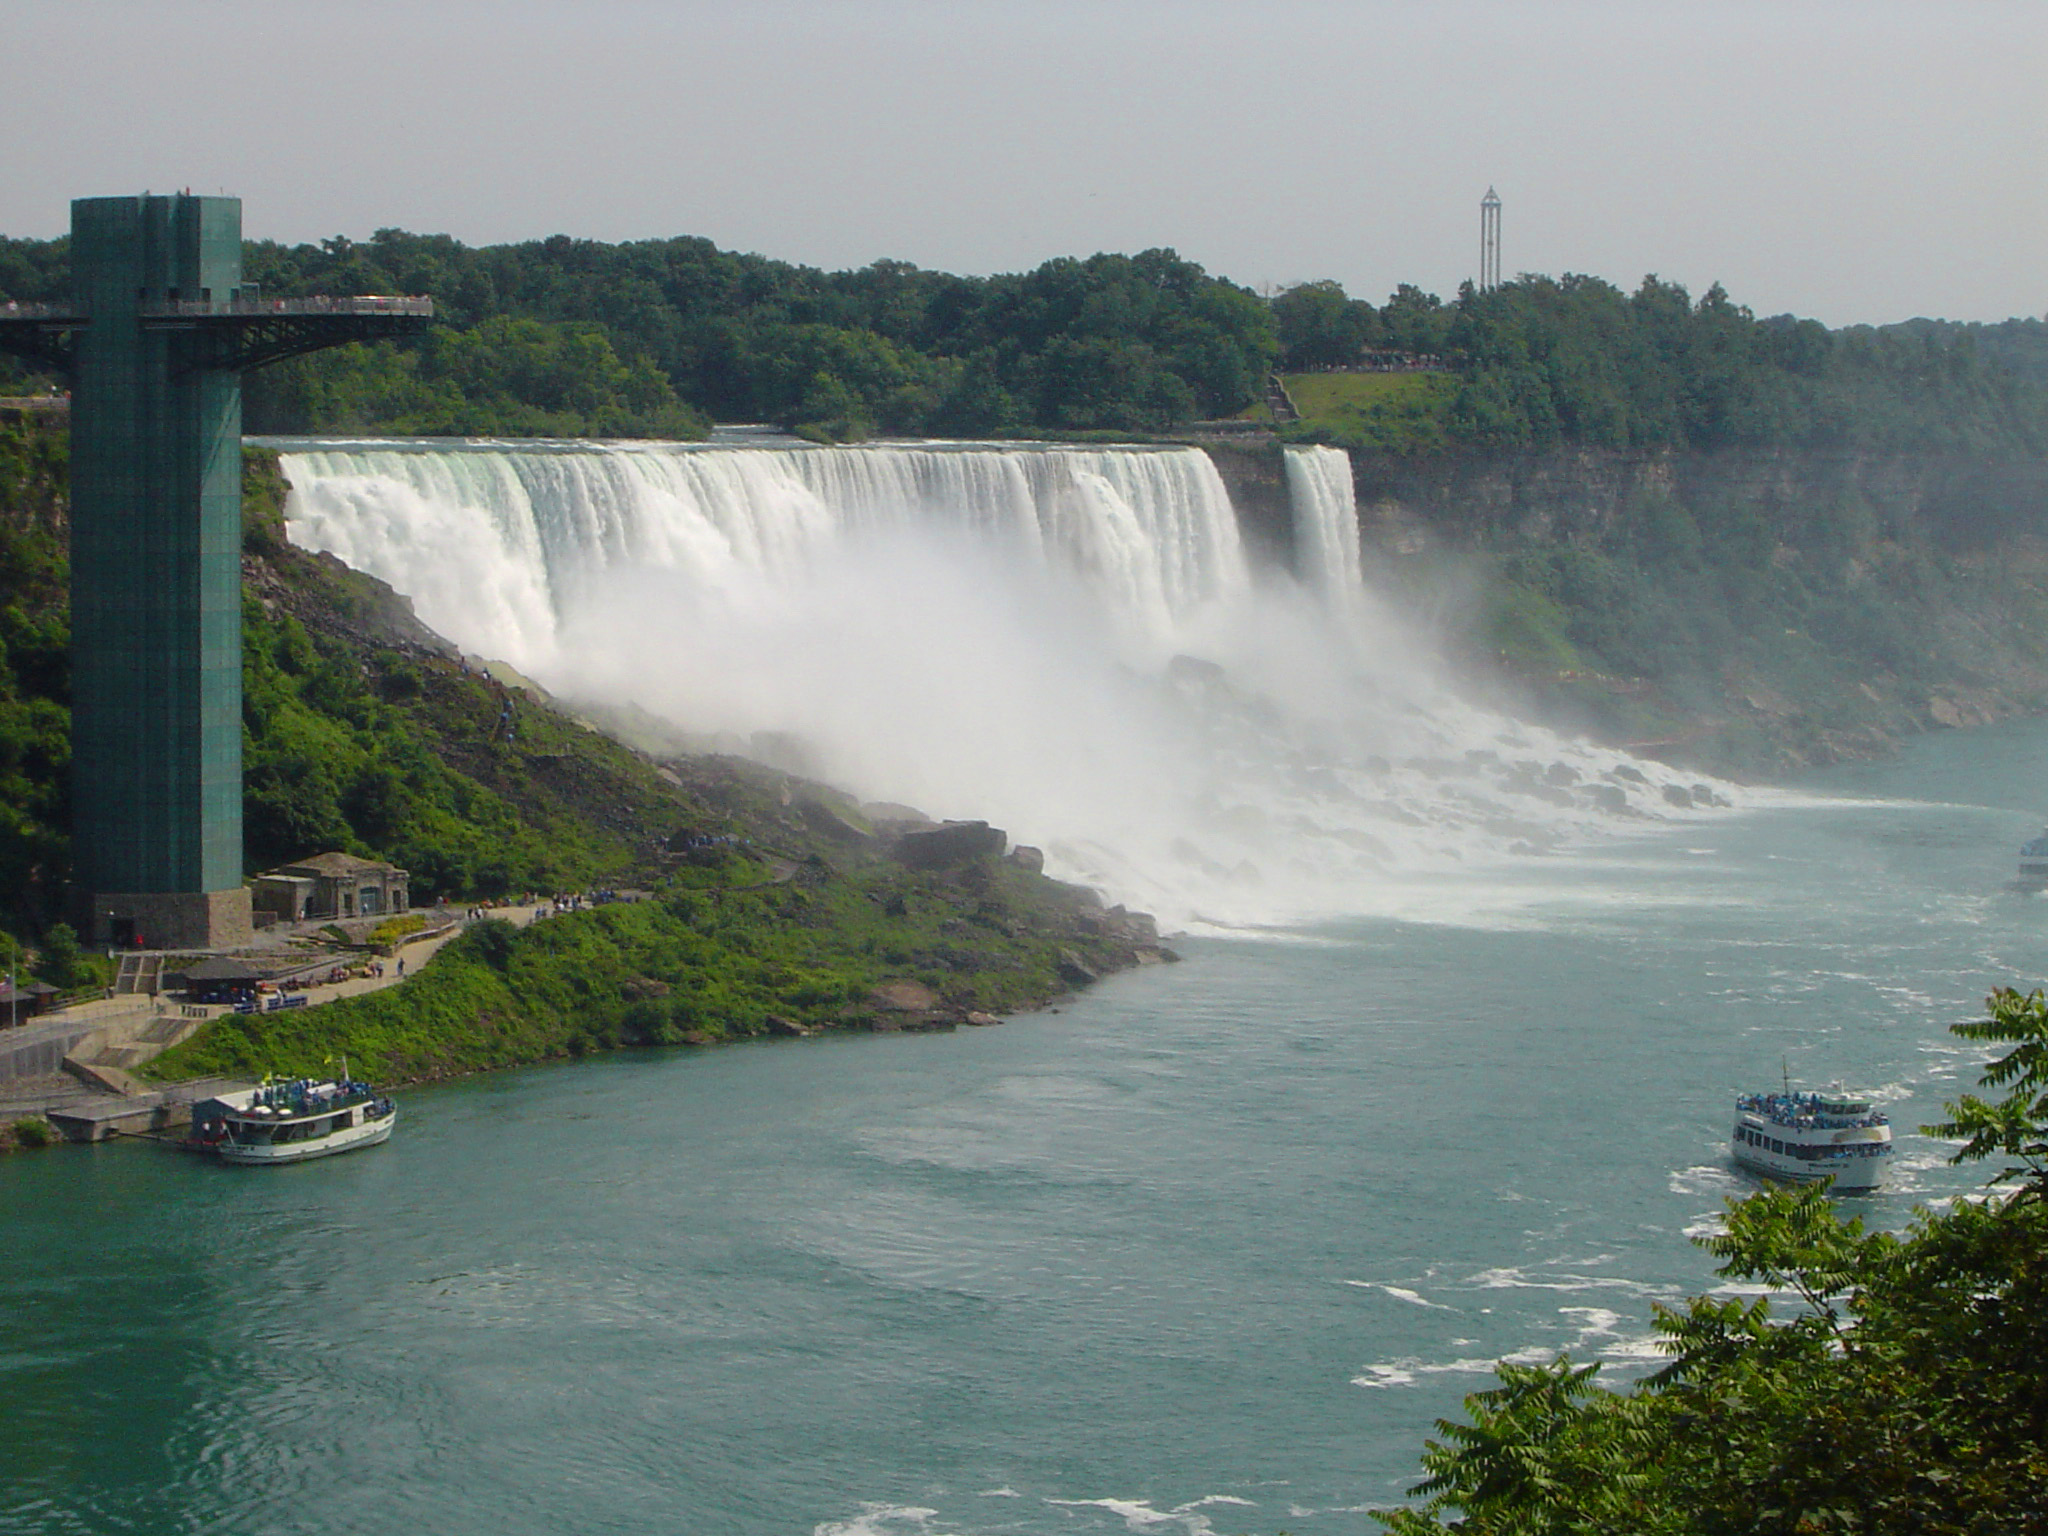 Overview of American Falls at Niagara Falls